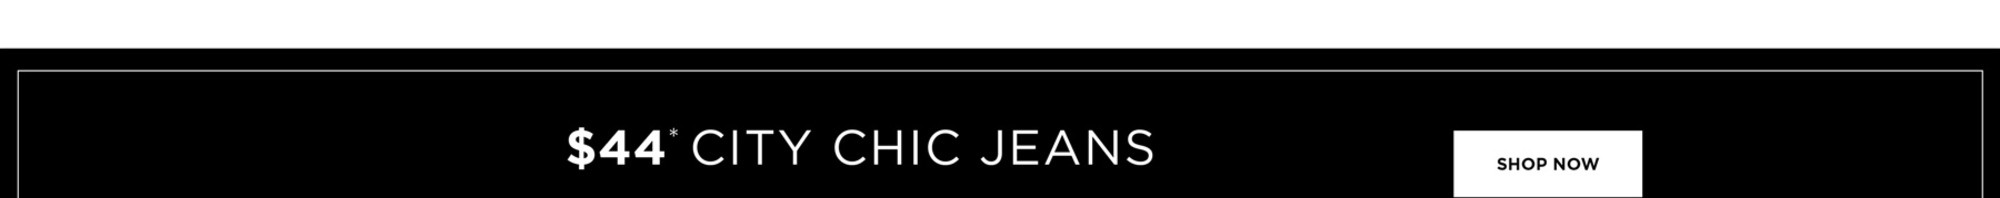 $44* City Chic Jeans - *Terms and Conditions apply, See Terms for Details -  SHOP NOW